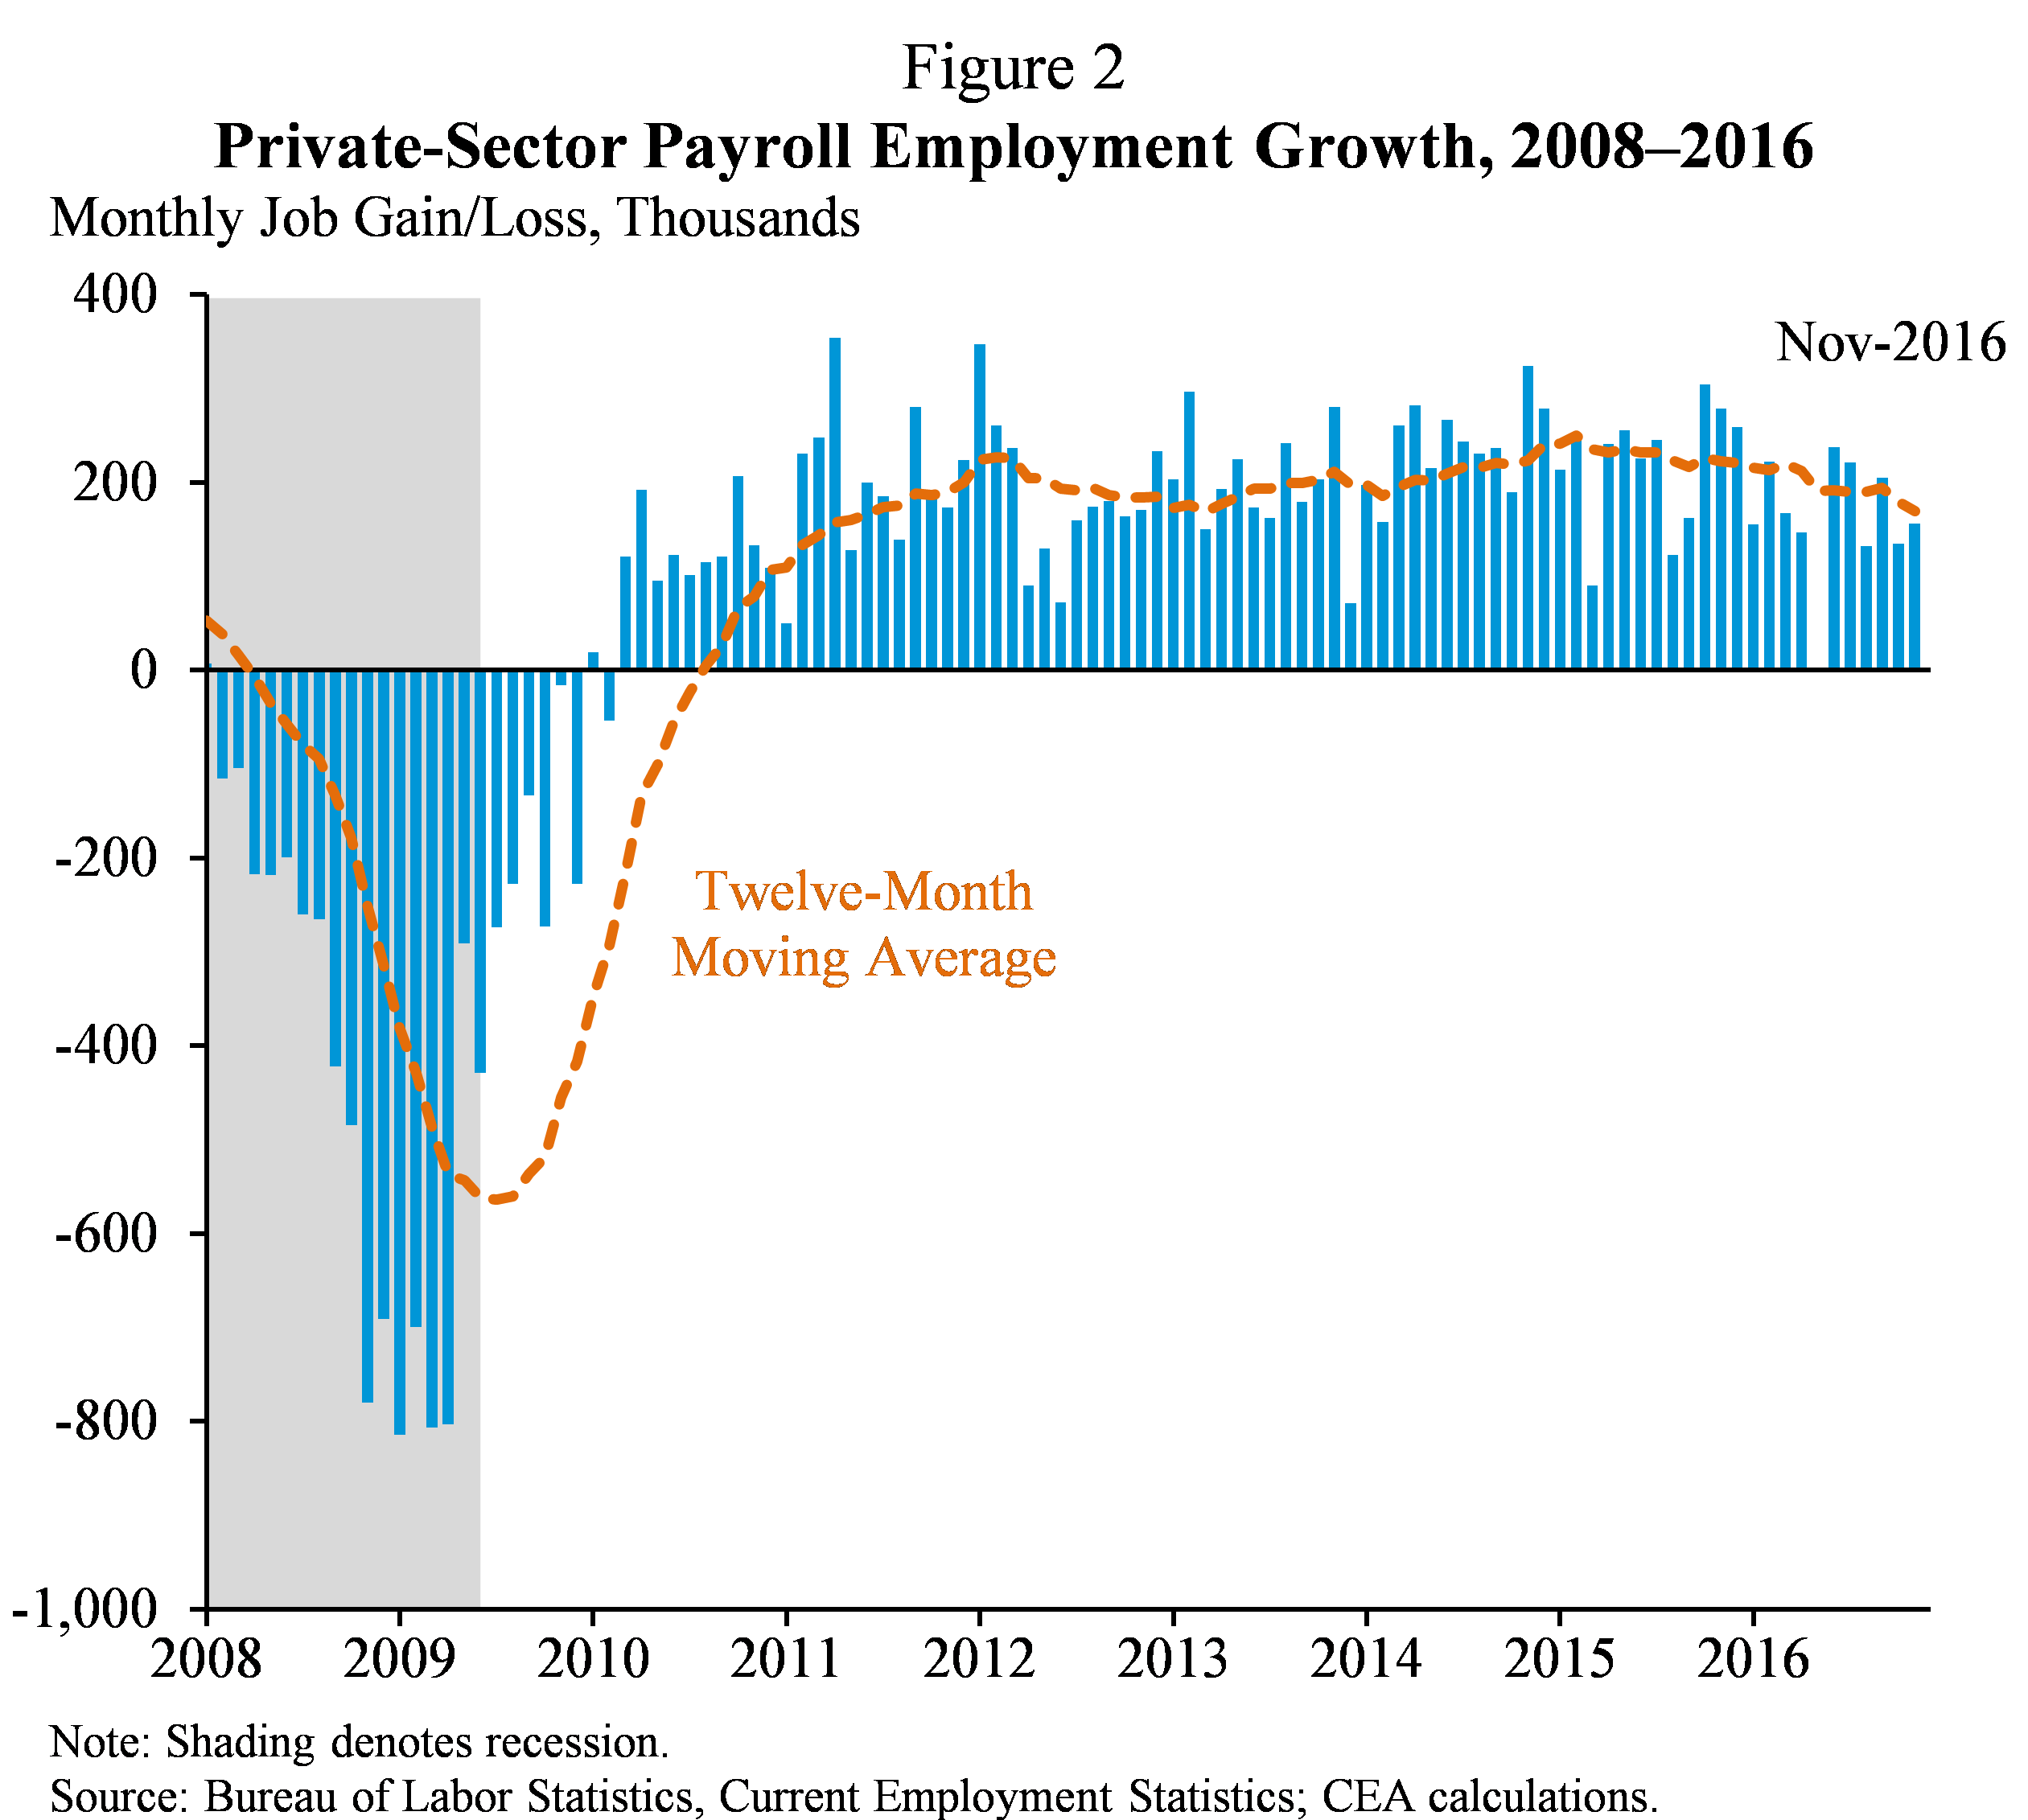 Figure 2.  Private-Sector Payroll Employment Growth, 2008-2016